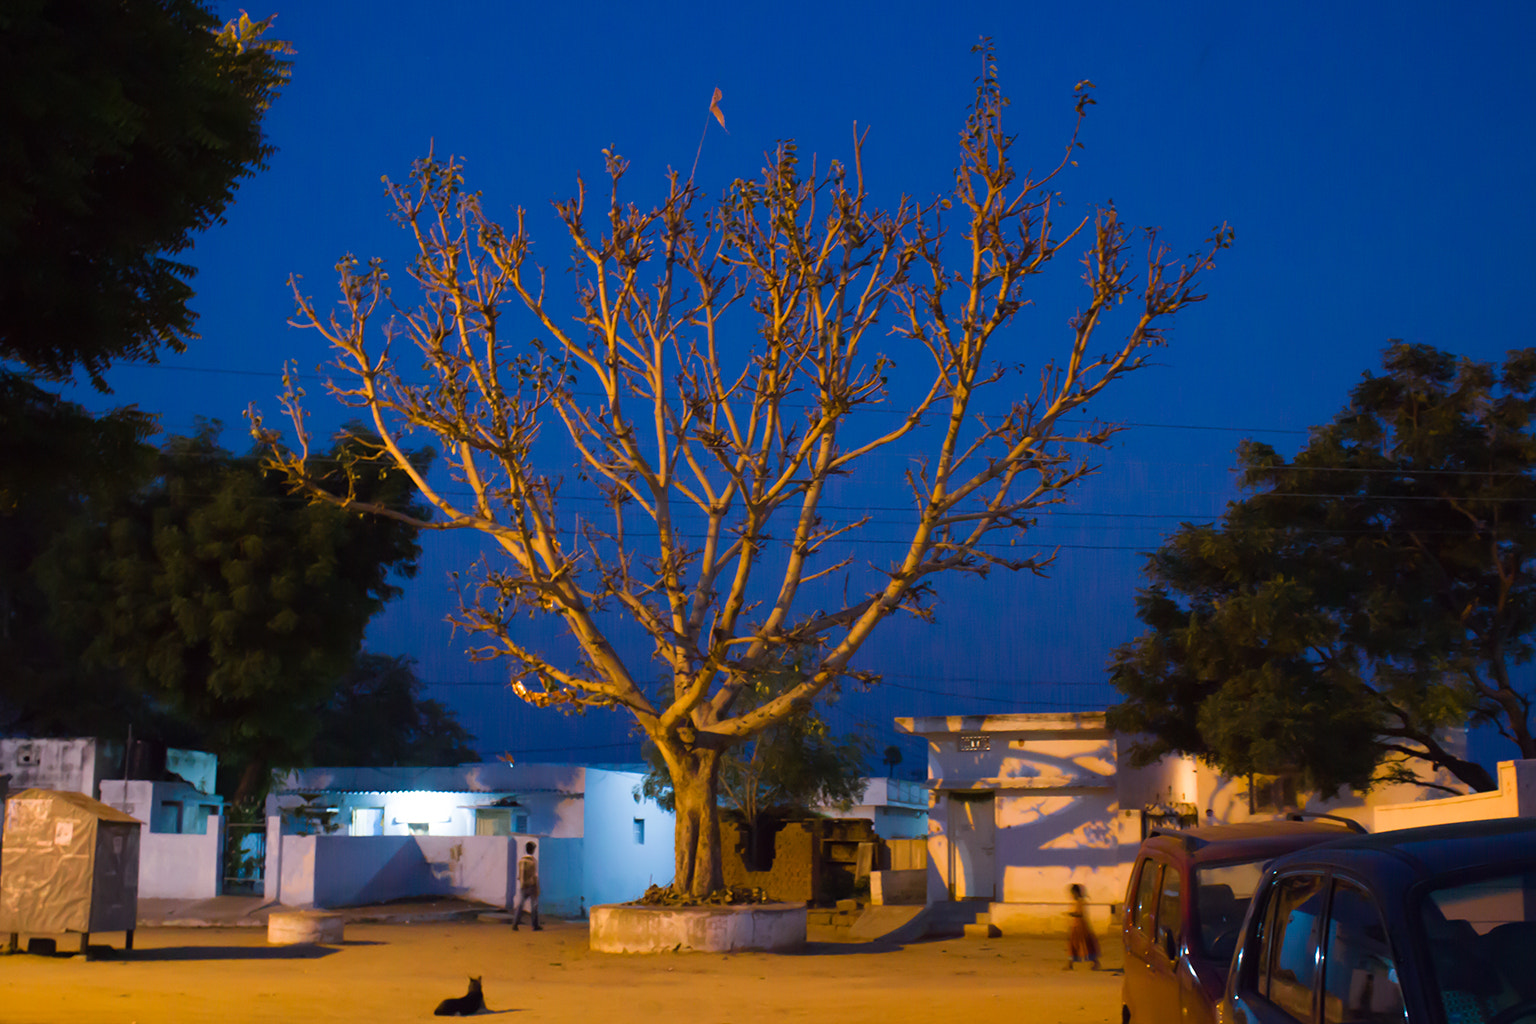 Photograph Live tree without Leafs by Gajender Singh Thakur on 500px